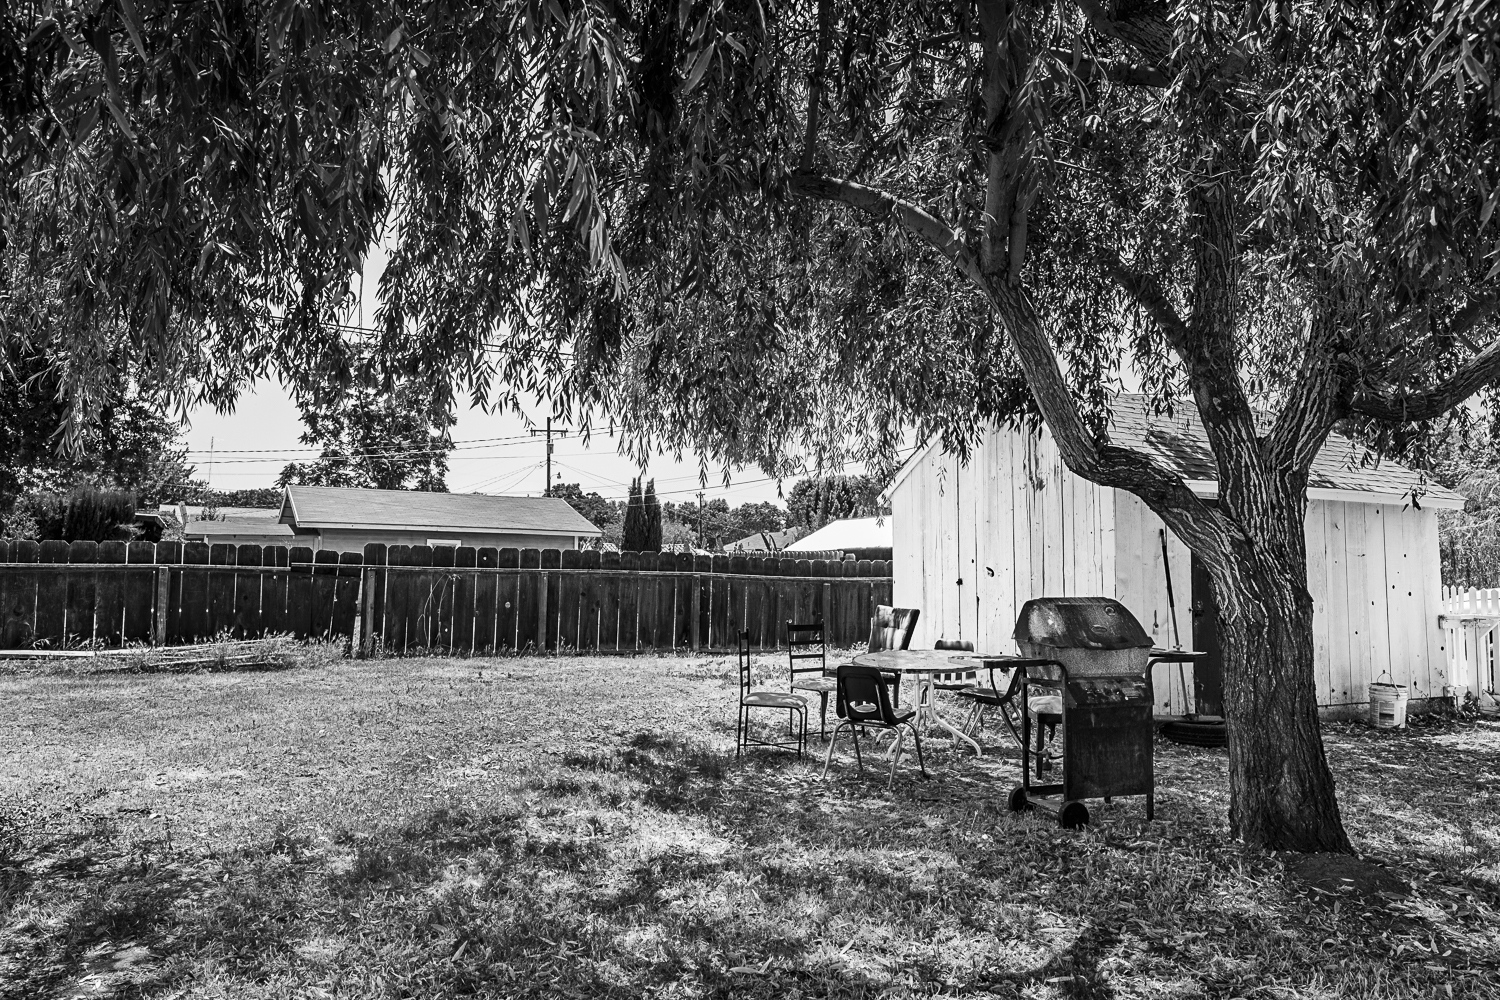 Backyard Gustine, Ca 2017